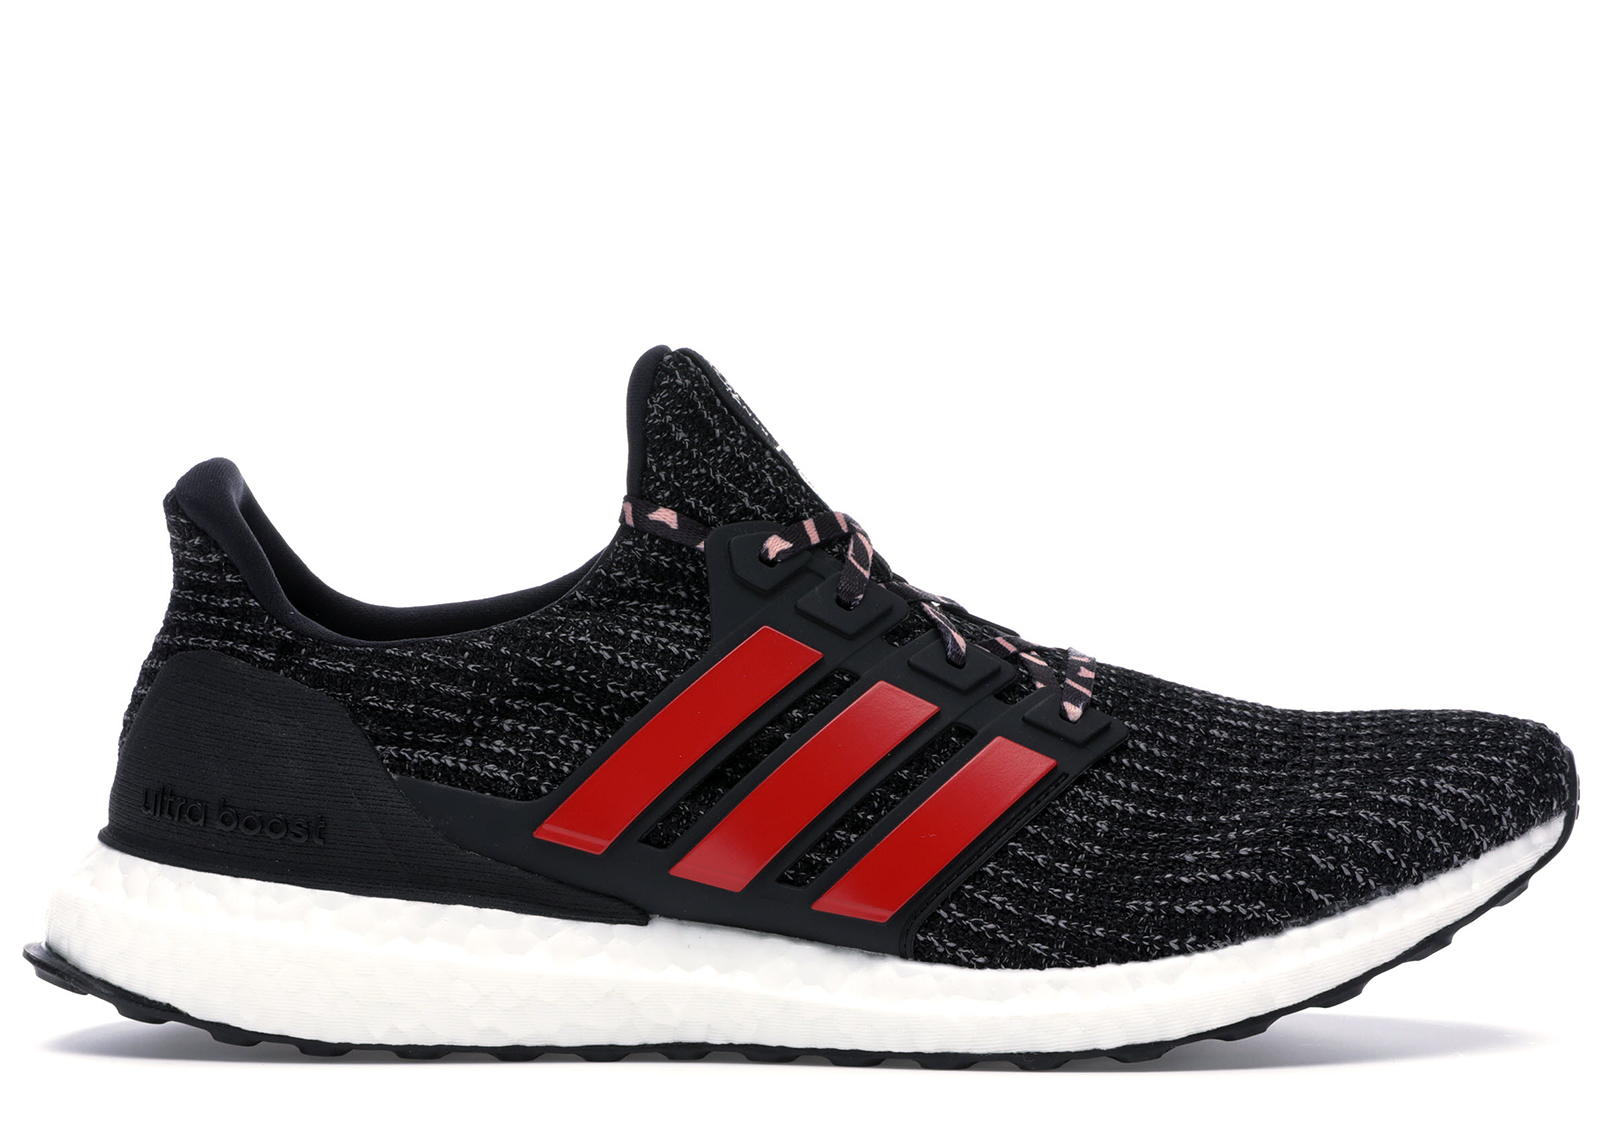 adidas Ultra Boost 4.0 'CNY' Red Orange Black For Sale